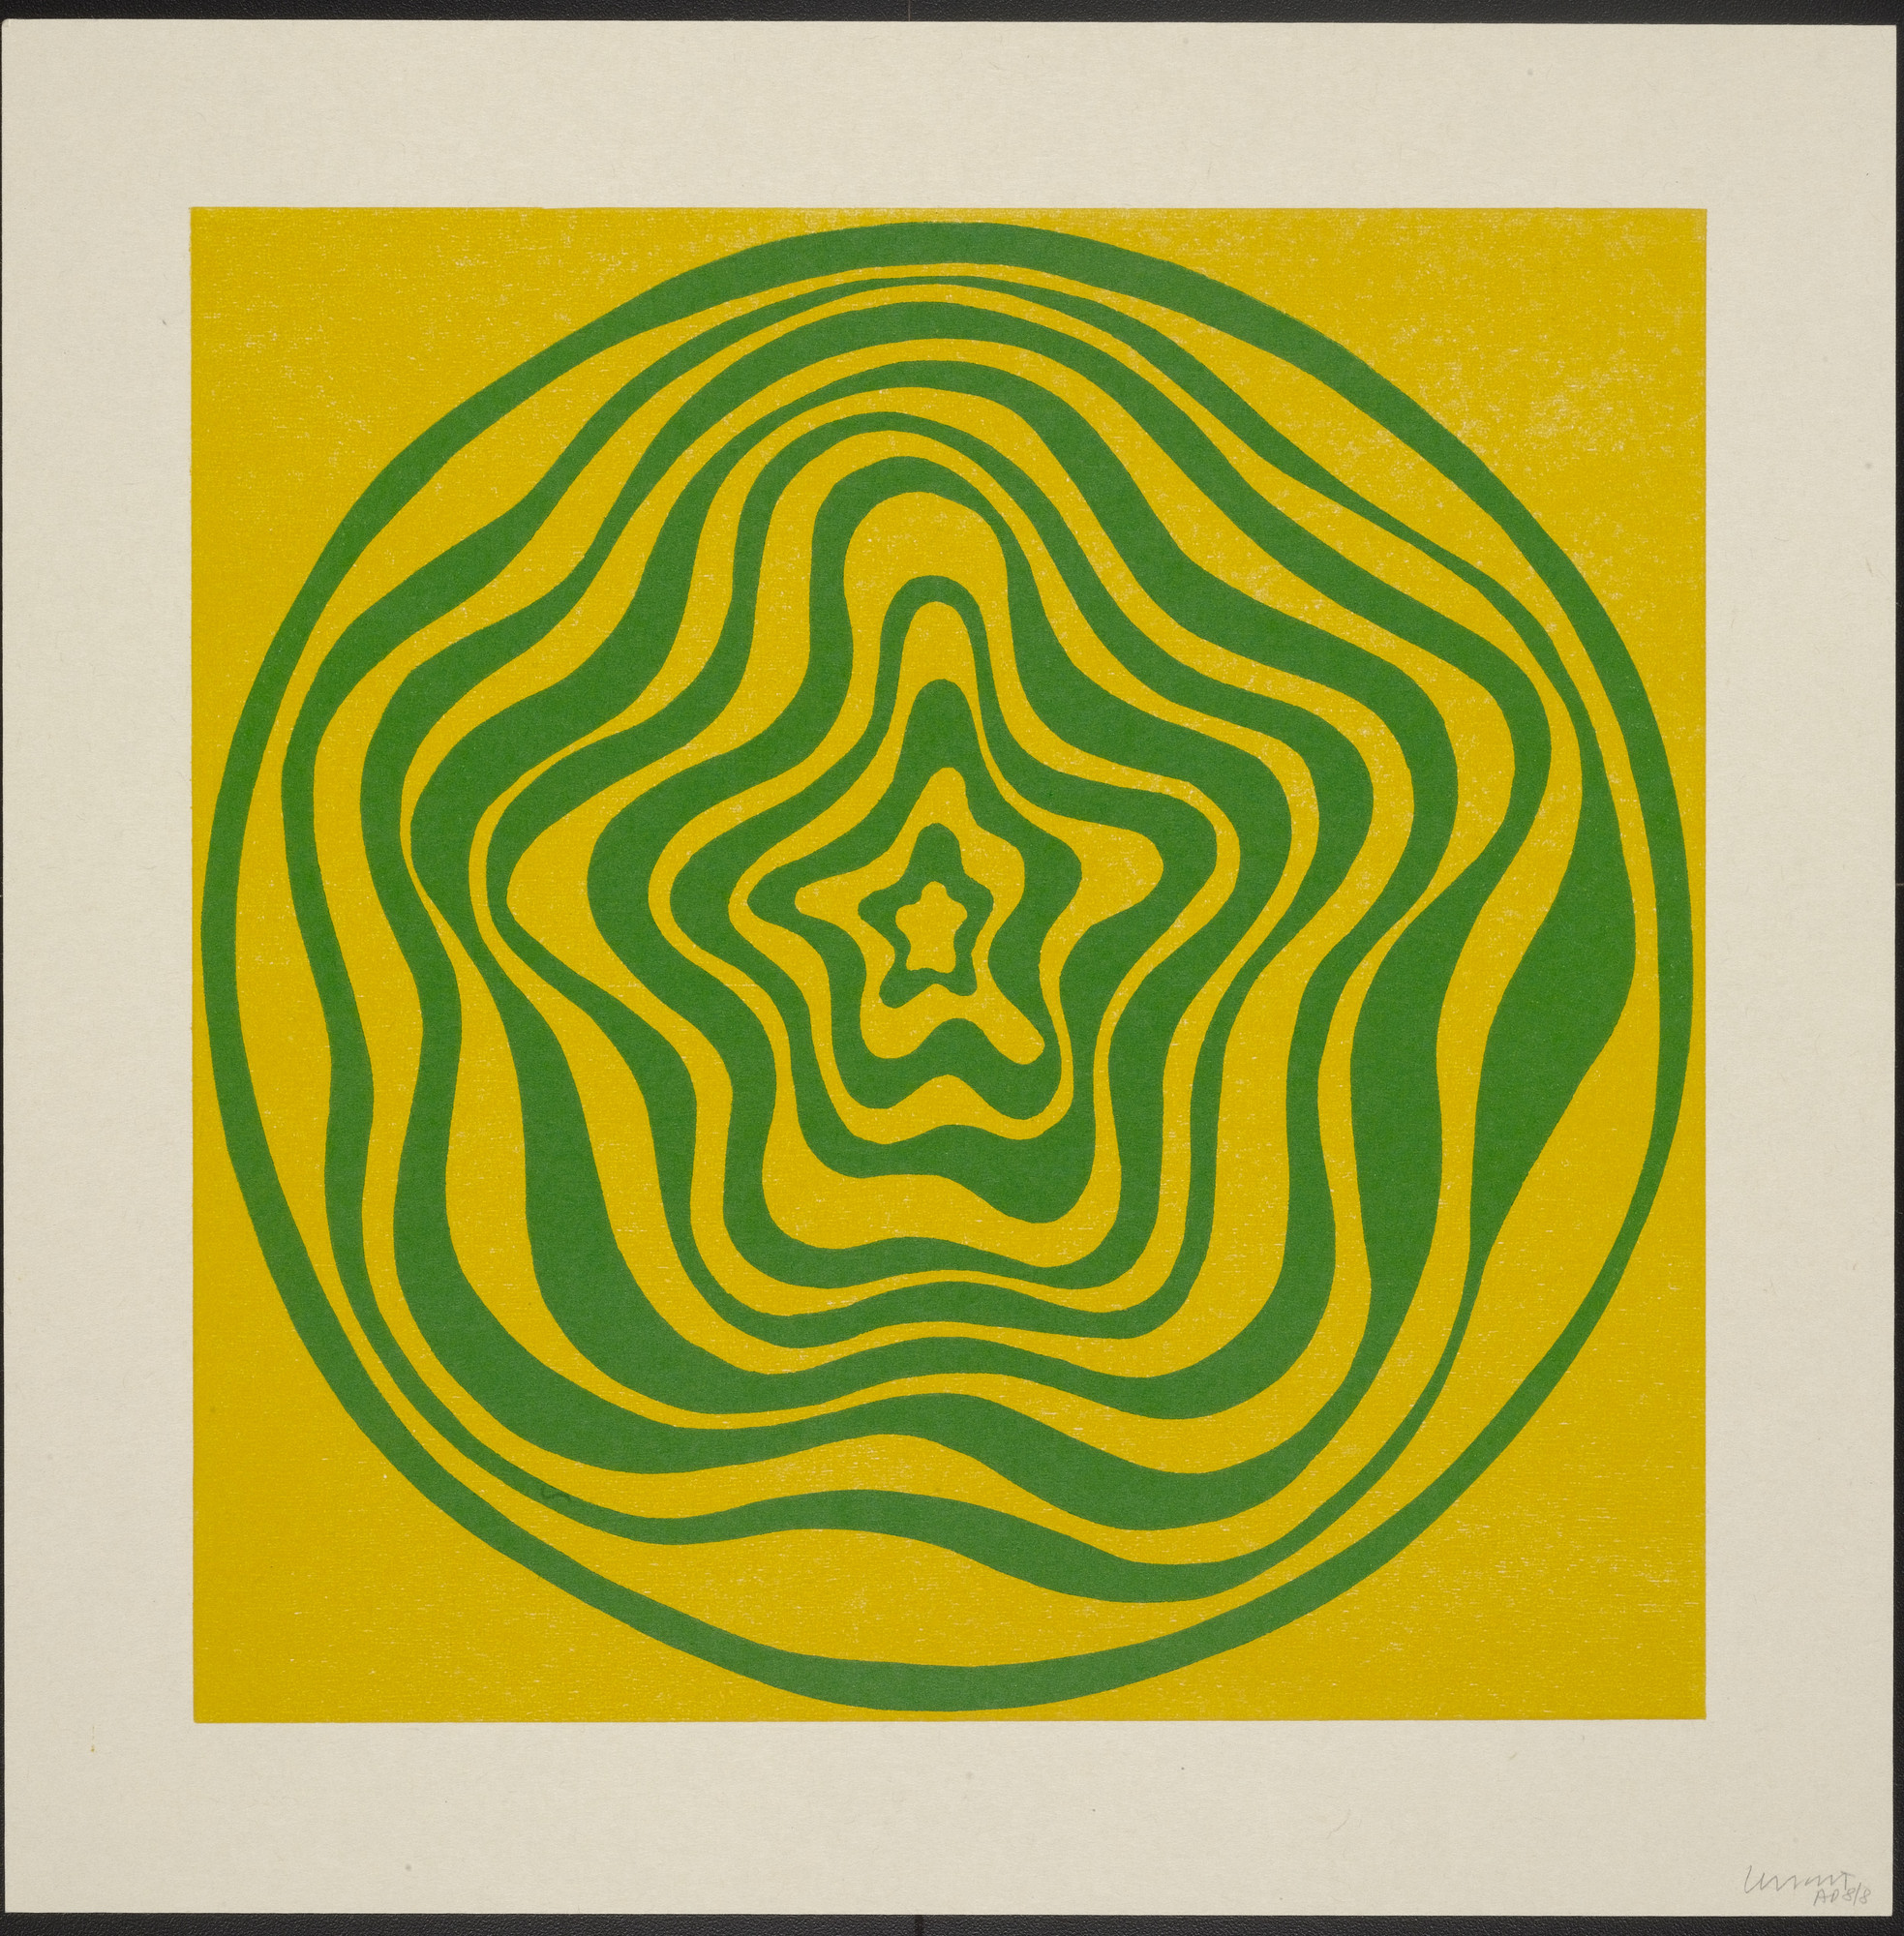 Sol LeWitt. Concentric Irregular Bands. 1997